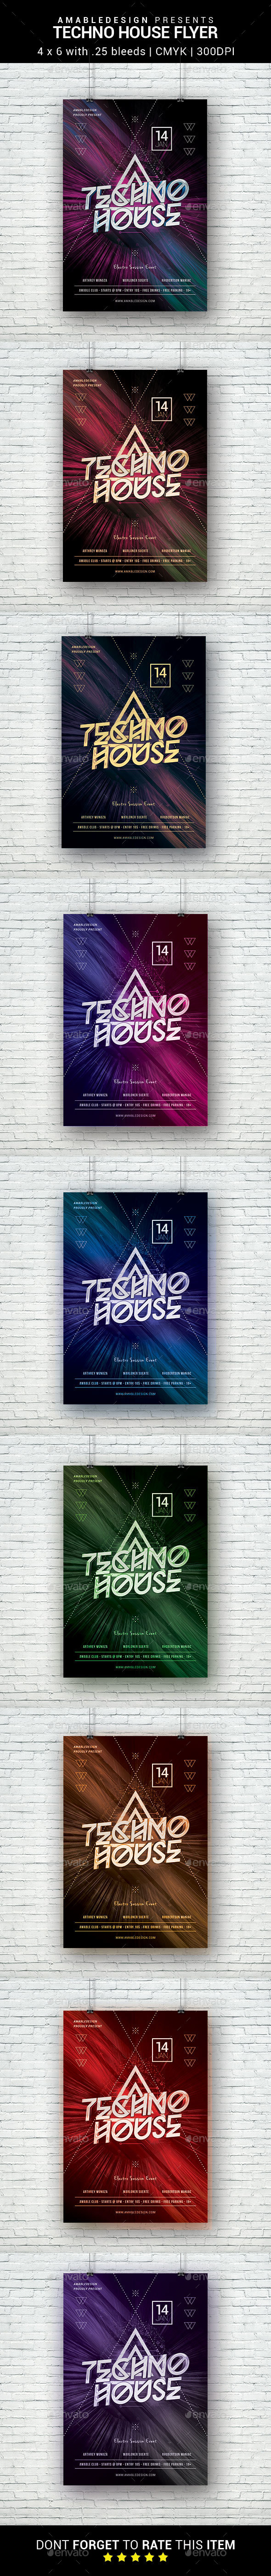 Techno House Flyer - Clubs & Parties Events